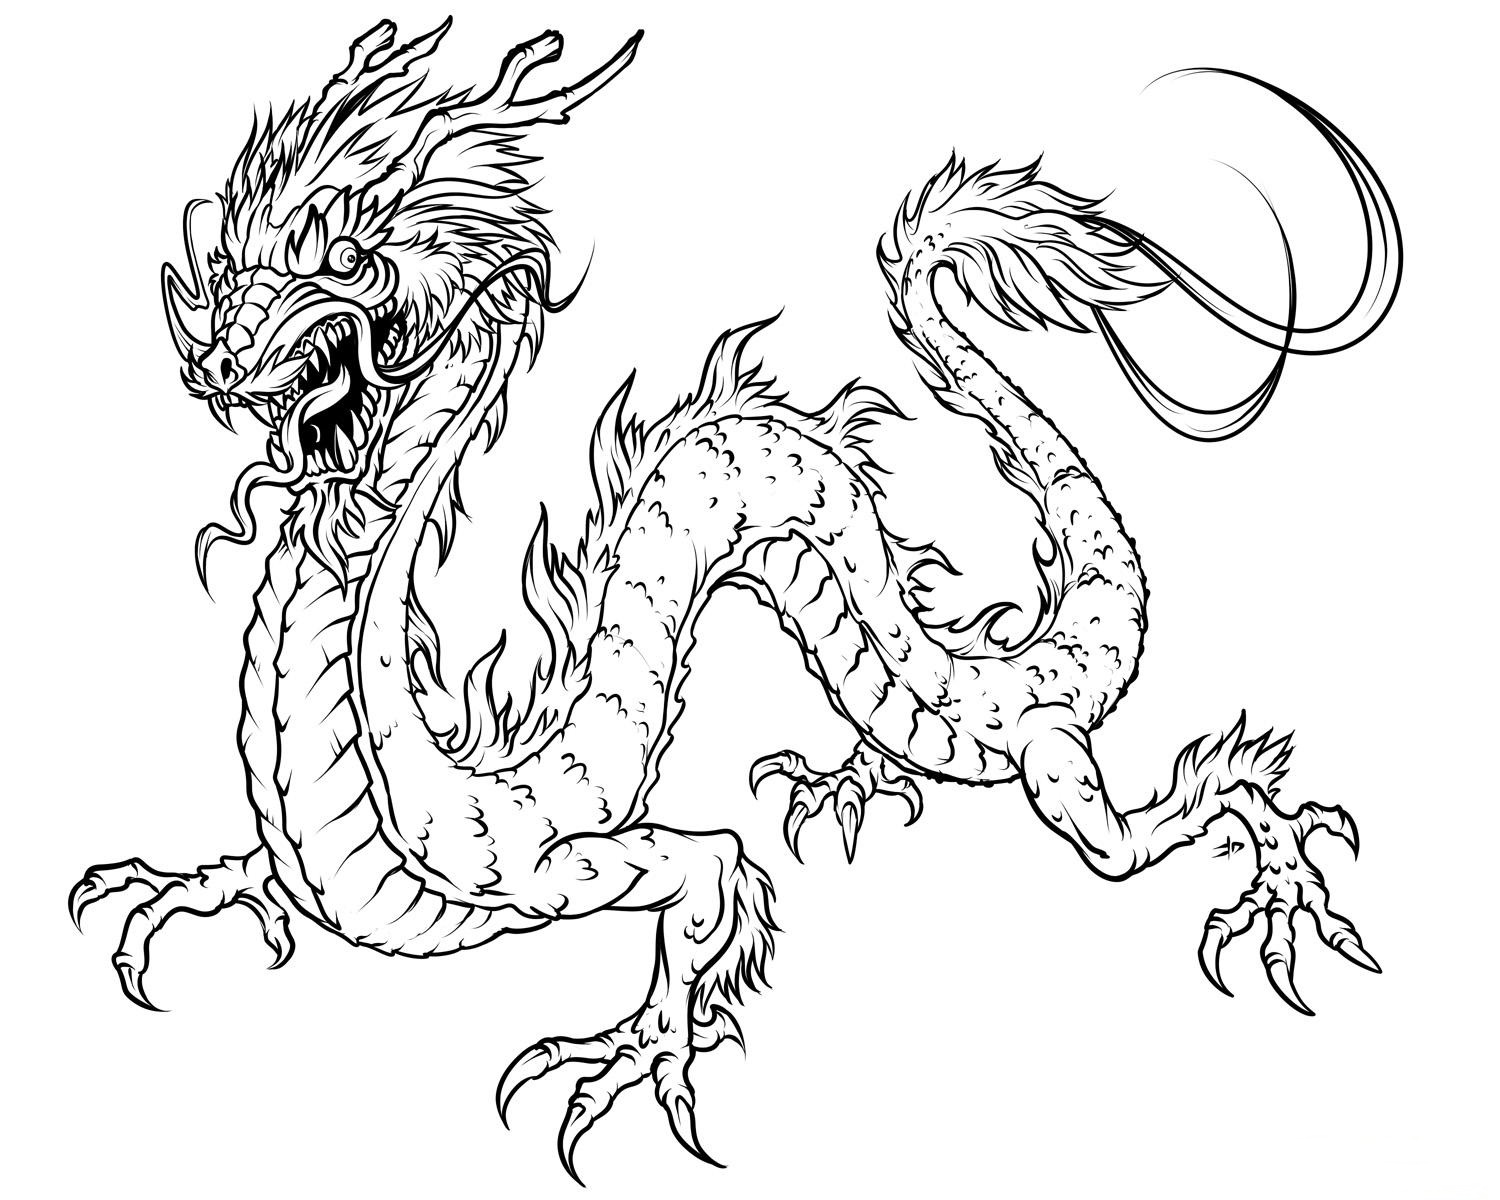 dragon colouring pictures 35 free printable dragon coloring pages pictures colouring dragon 1 1